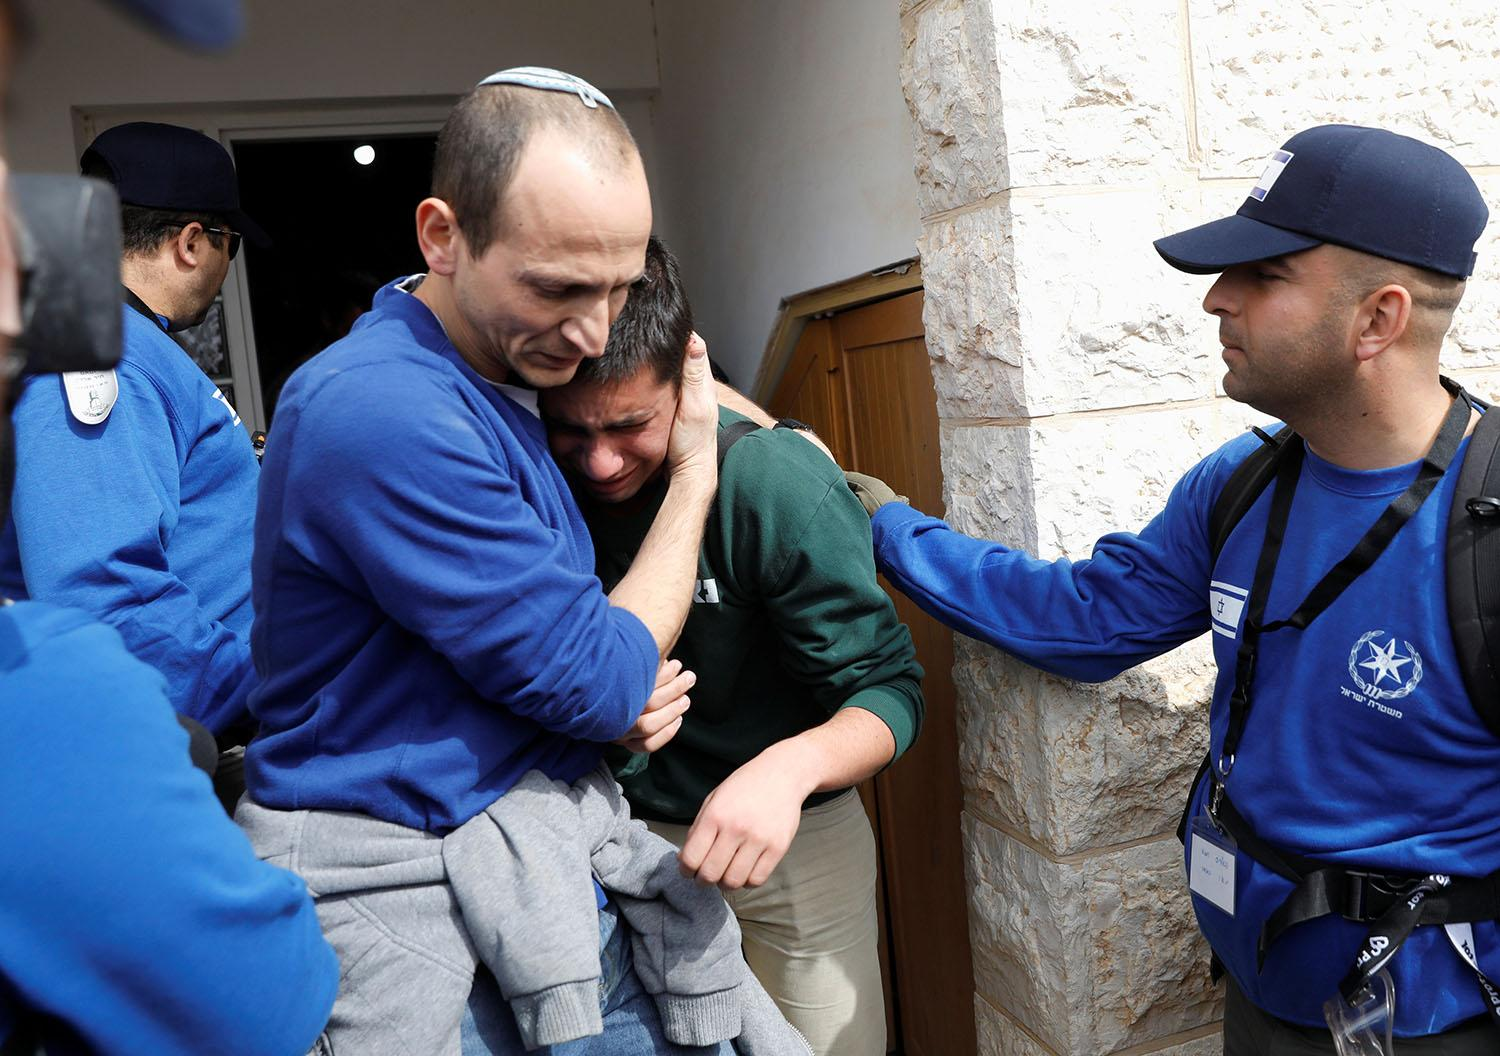 <p>Israeli police comfort a pro-settlement activist during an operation by Israeli forces to evict settlers from the West Bank settlement of Ofra, Tuesday, Feb. 28, 2017. Israeli forces began evacuating nine homes in the settlement following a Supreme Court decision that ruled they were built on private Palestinian land. REUTERS/Ronen Zvulun </p>